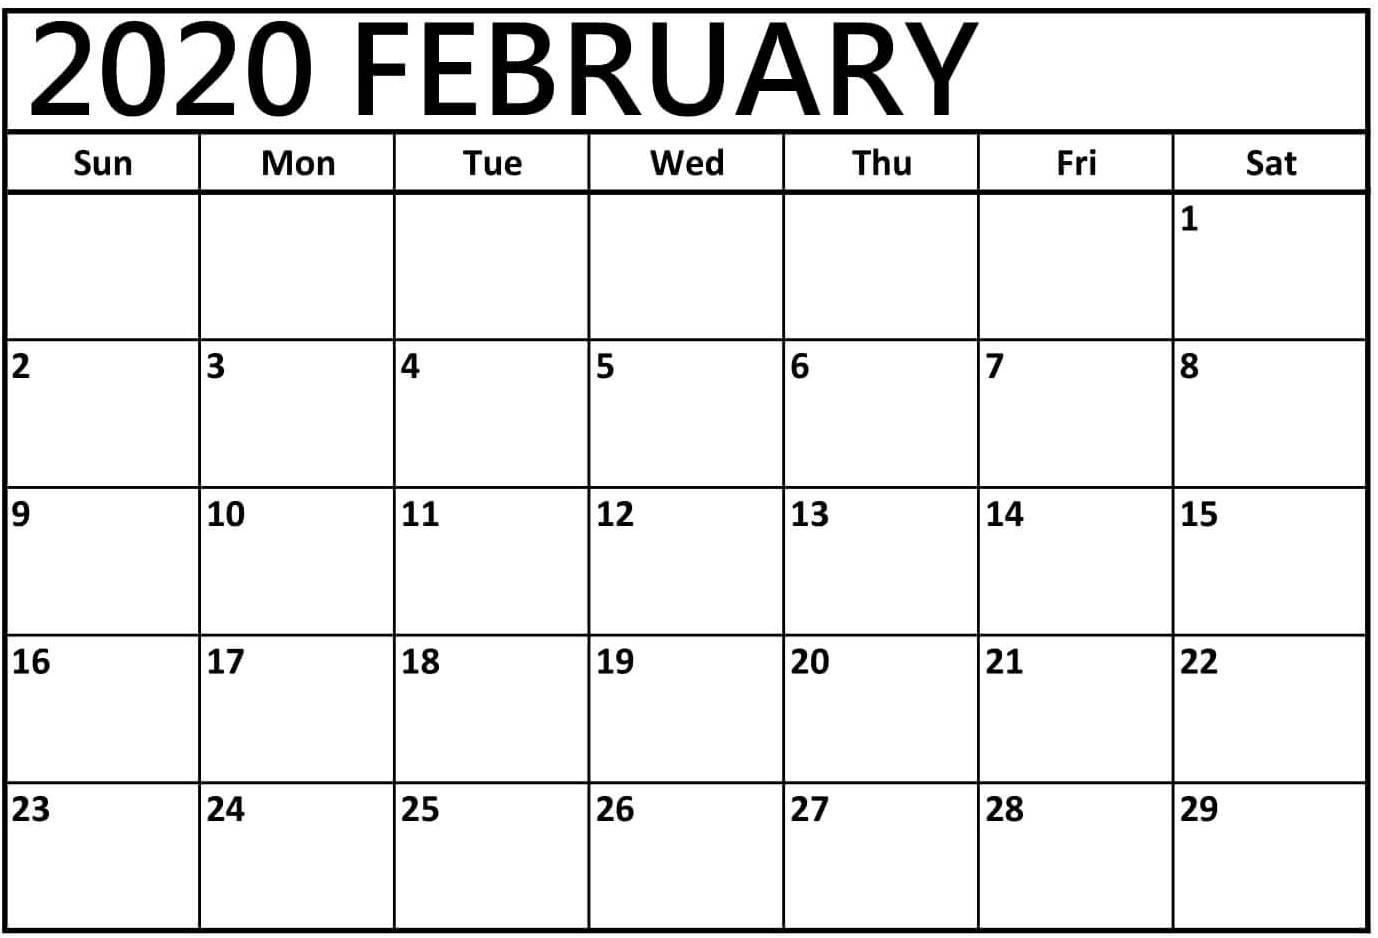 Printable 2020 February Calendar Template With Holidays with Individual Monthly Printable Calendars For 2020 And 2021